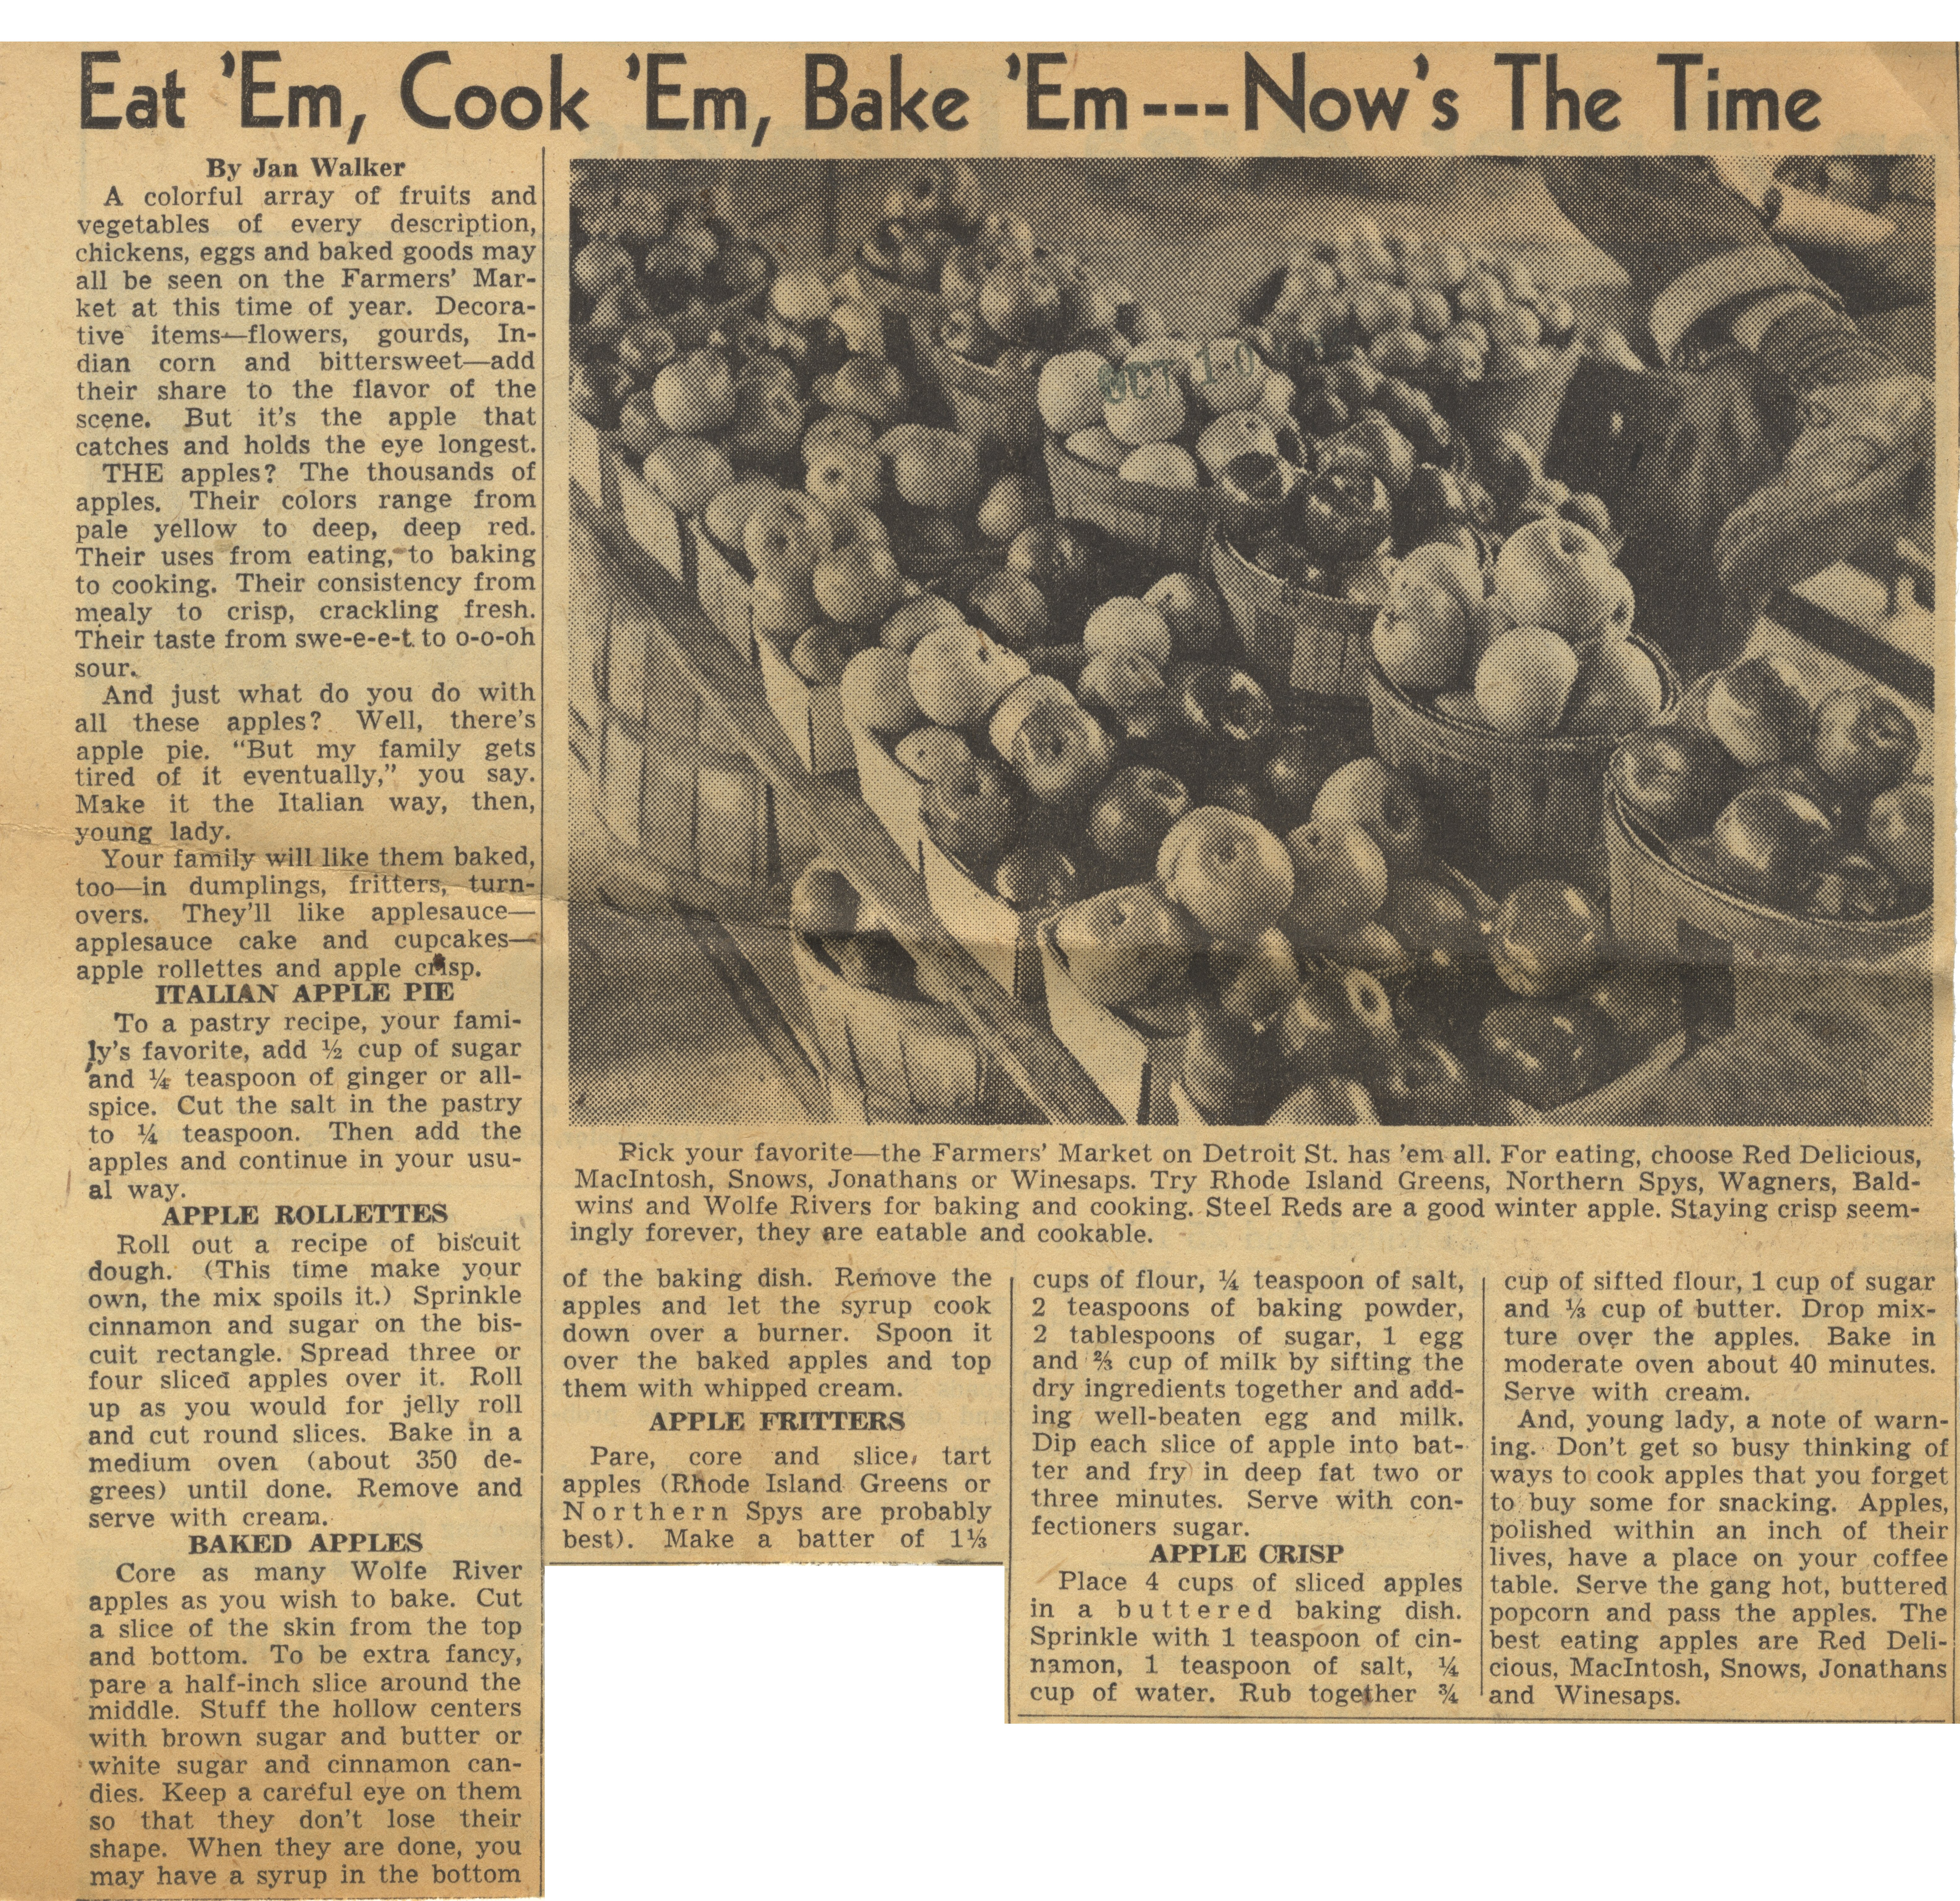 Eat 'Em, Cook 'Em, Bake 'Em - Now's The Time image